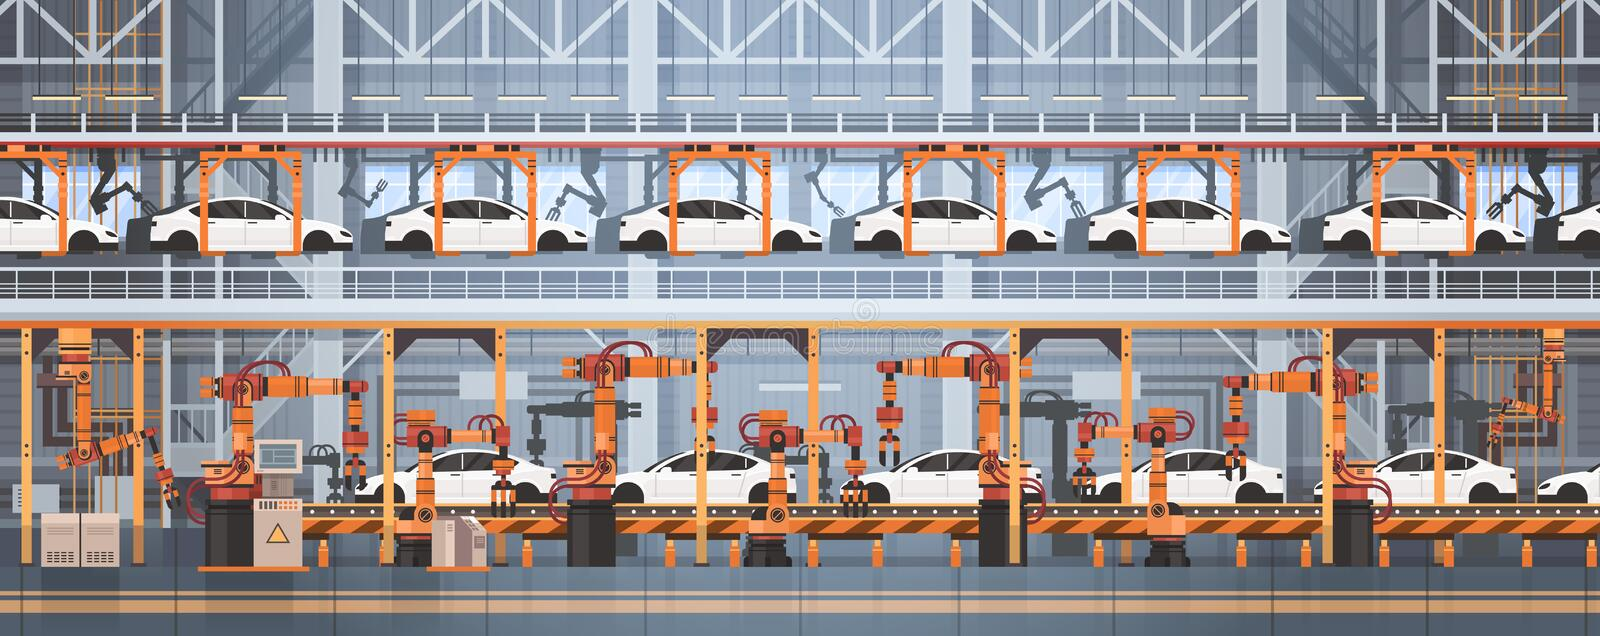 Car Production Conveyor Automatic Assembly Line Machinery Industrial Automation Industry Concept royalty free illustration